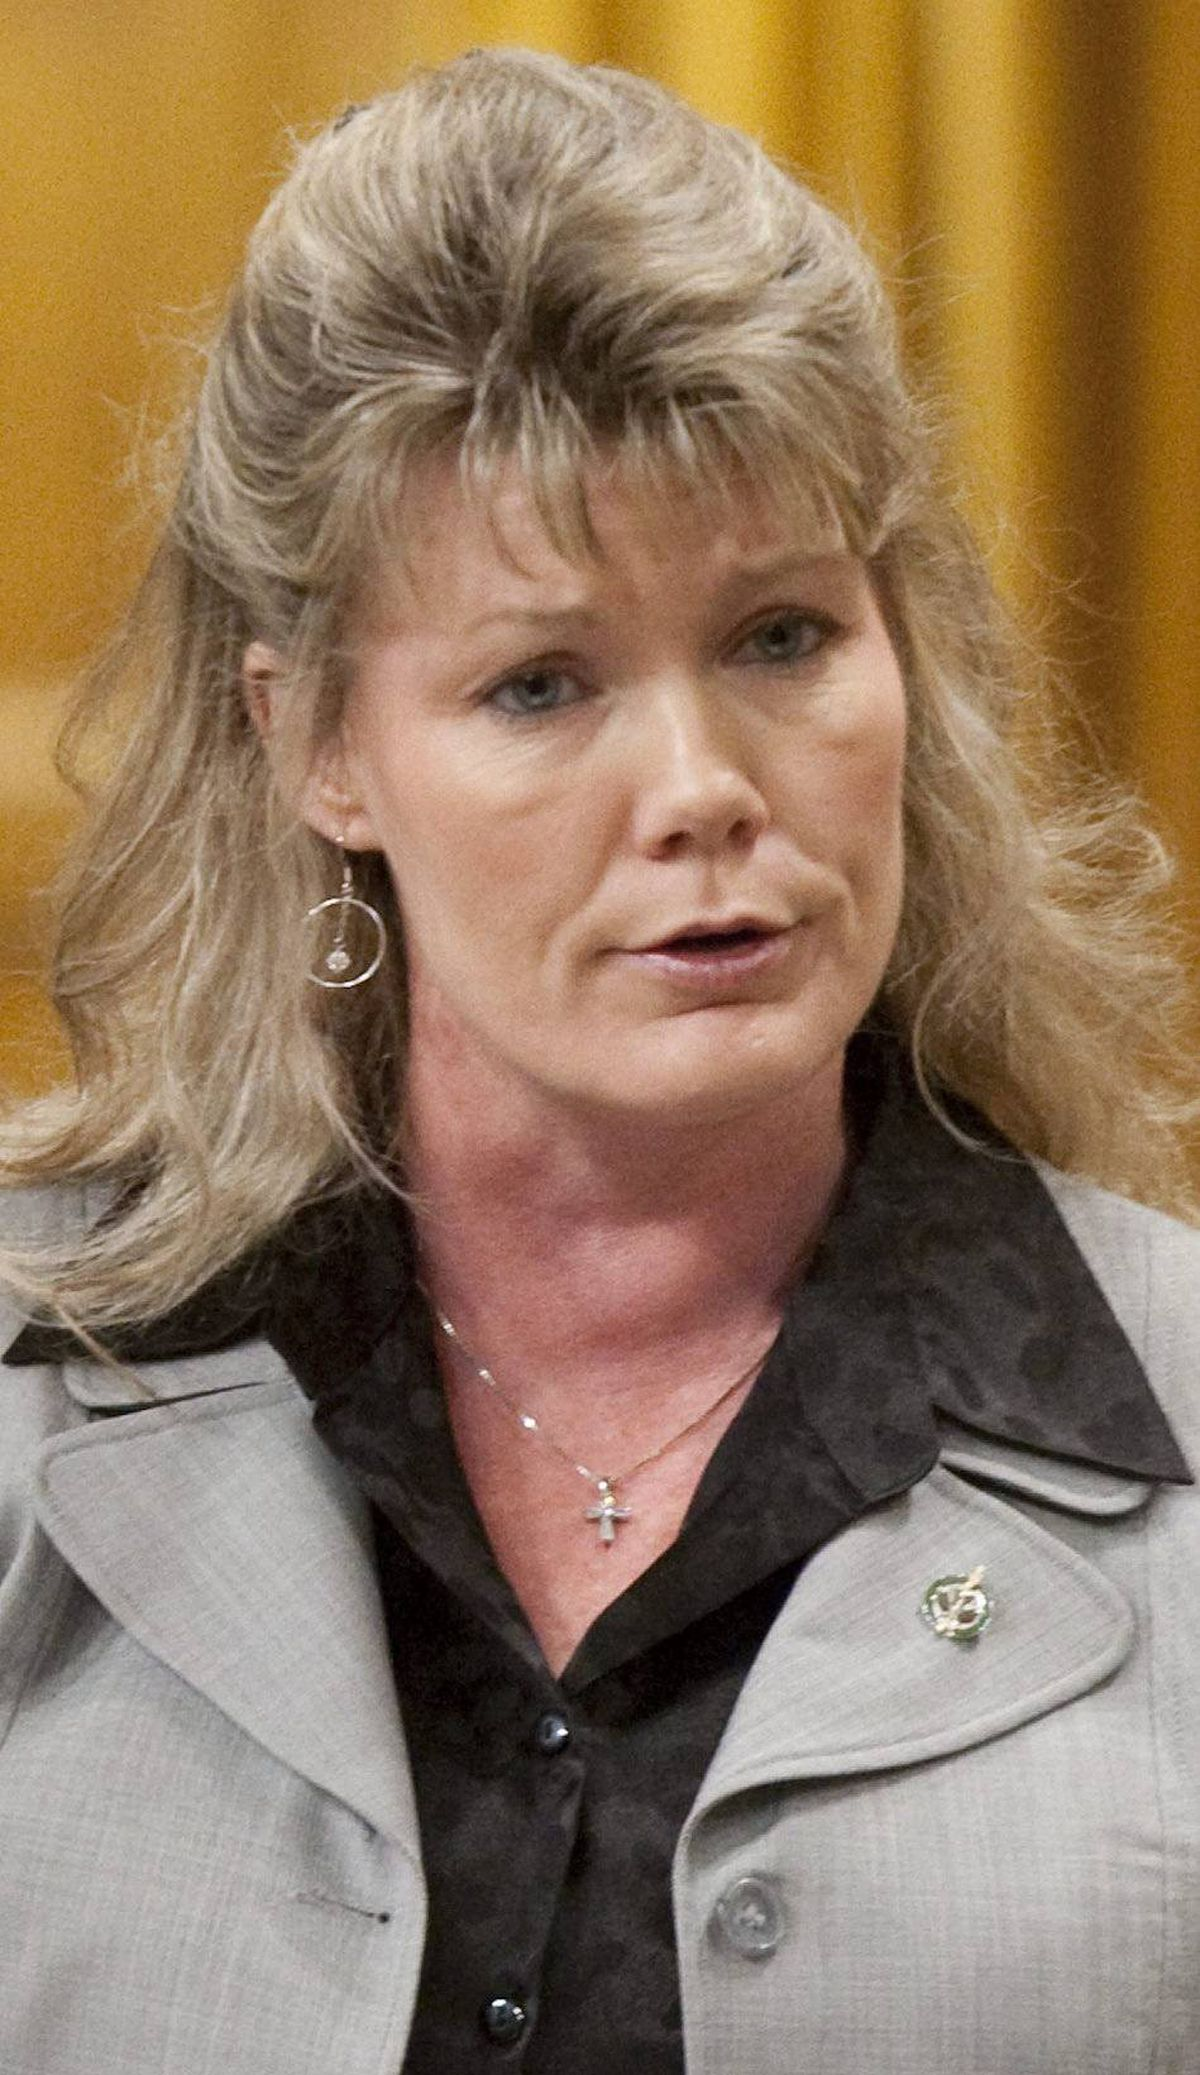 'GENDER BALANCE': Mr. Harper's most recent cabinet of 38 ministers included 10 women. This election increased the number of women in the Conservative caucus and might put pressure on Mr. Harper to boost the gender balance in cabinet. SHELLY GLOVER: One of the experienced female Tory MPs that Mr. Harper could look to to increase the number of women in the cabinet.